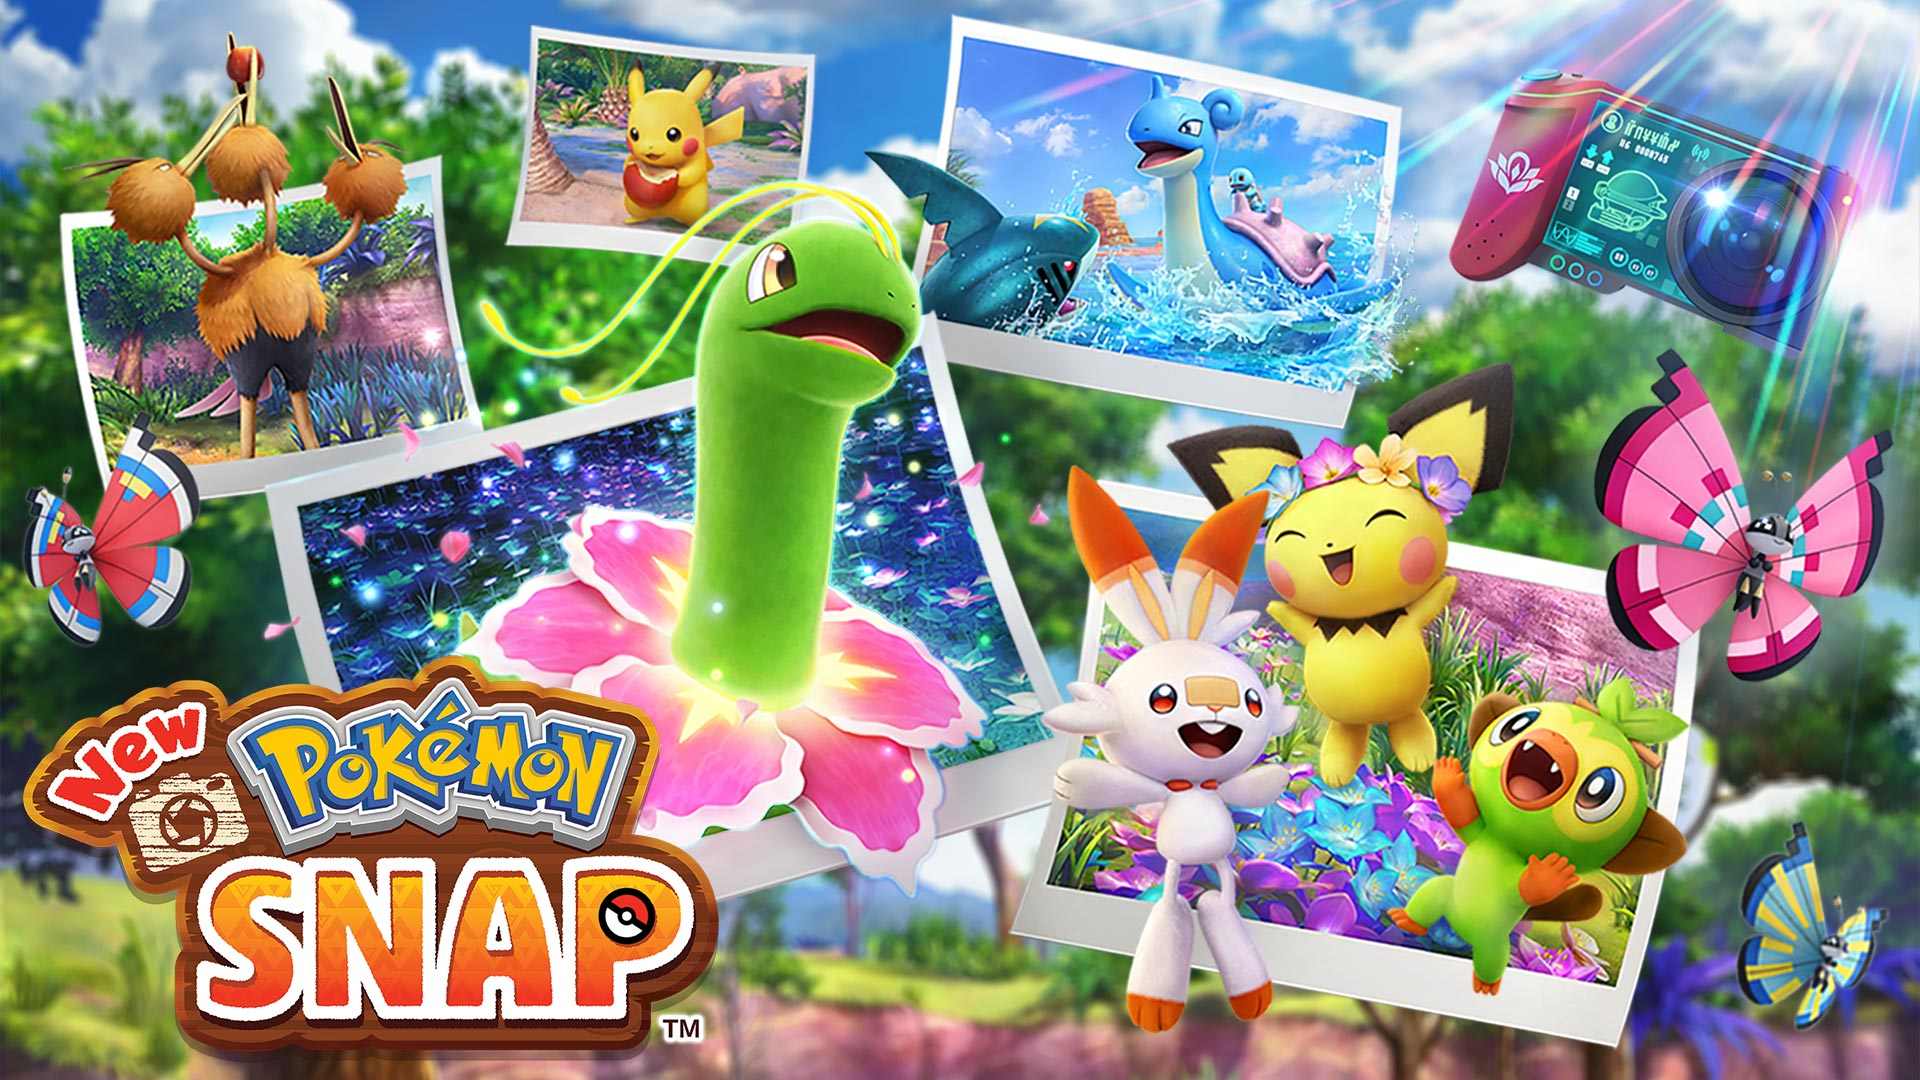 Pokemon Snap Gets New Extensive Trailer Showcasing New Pokemon